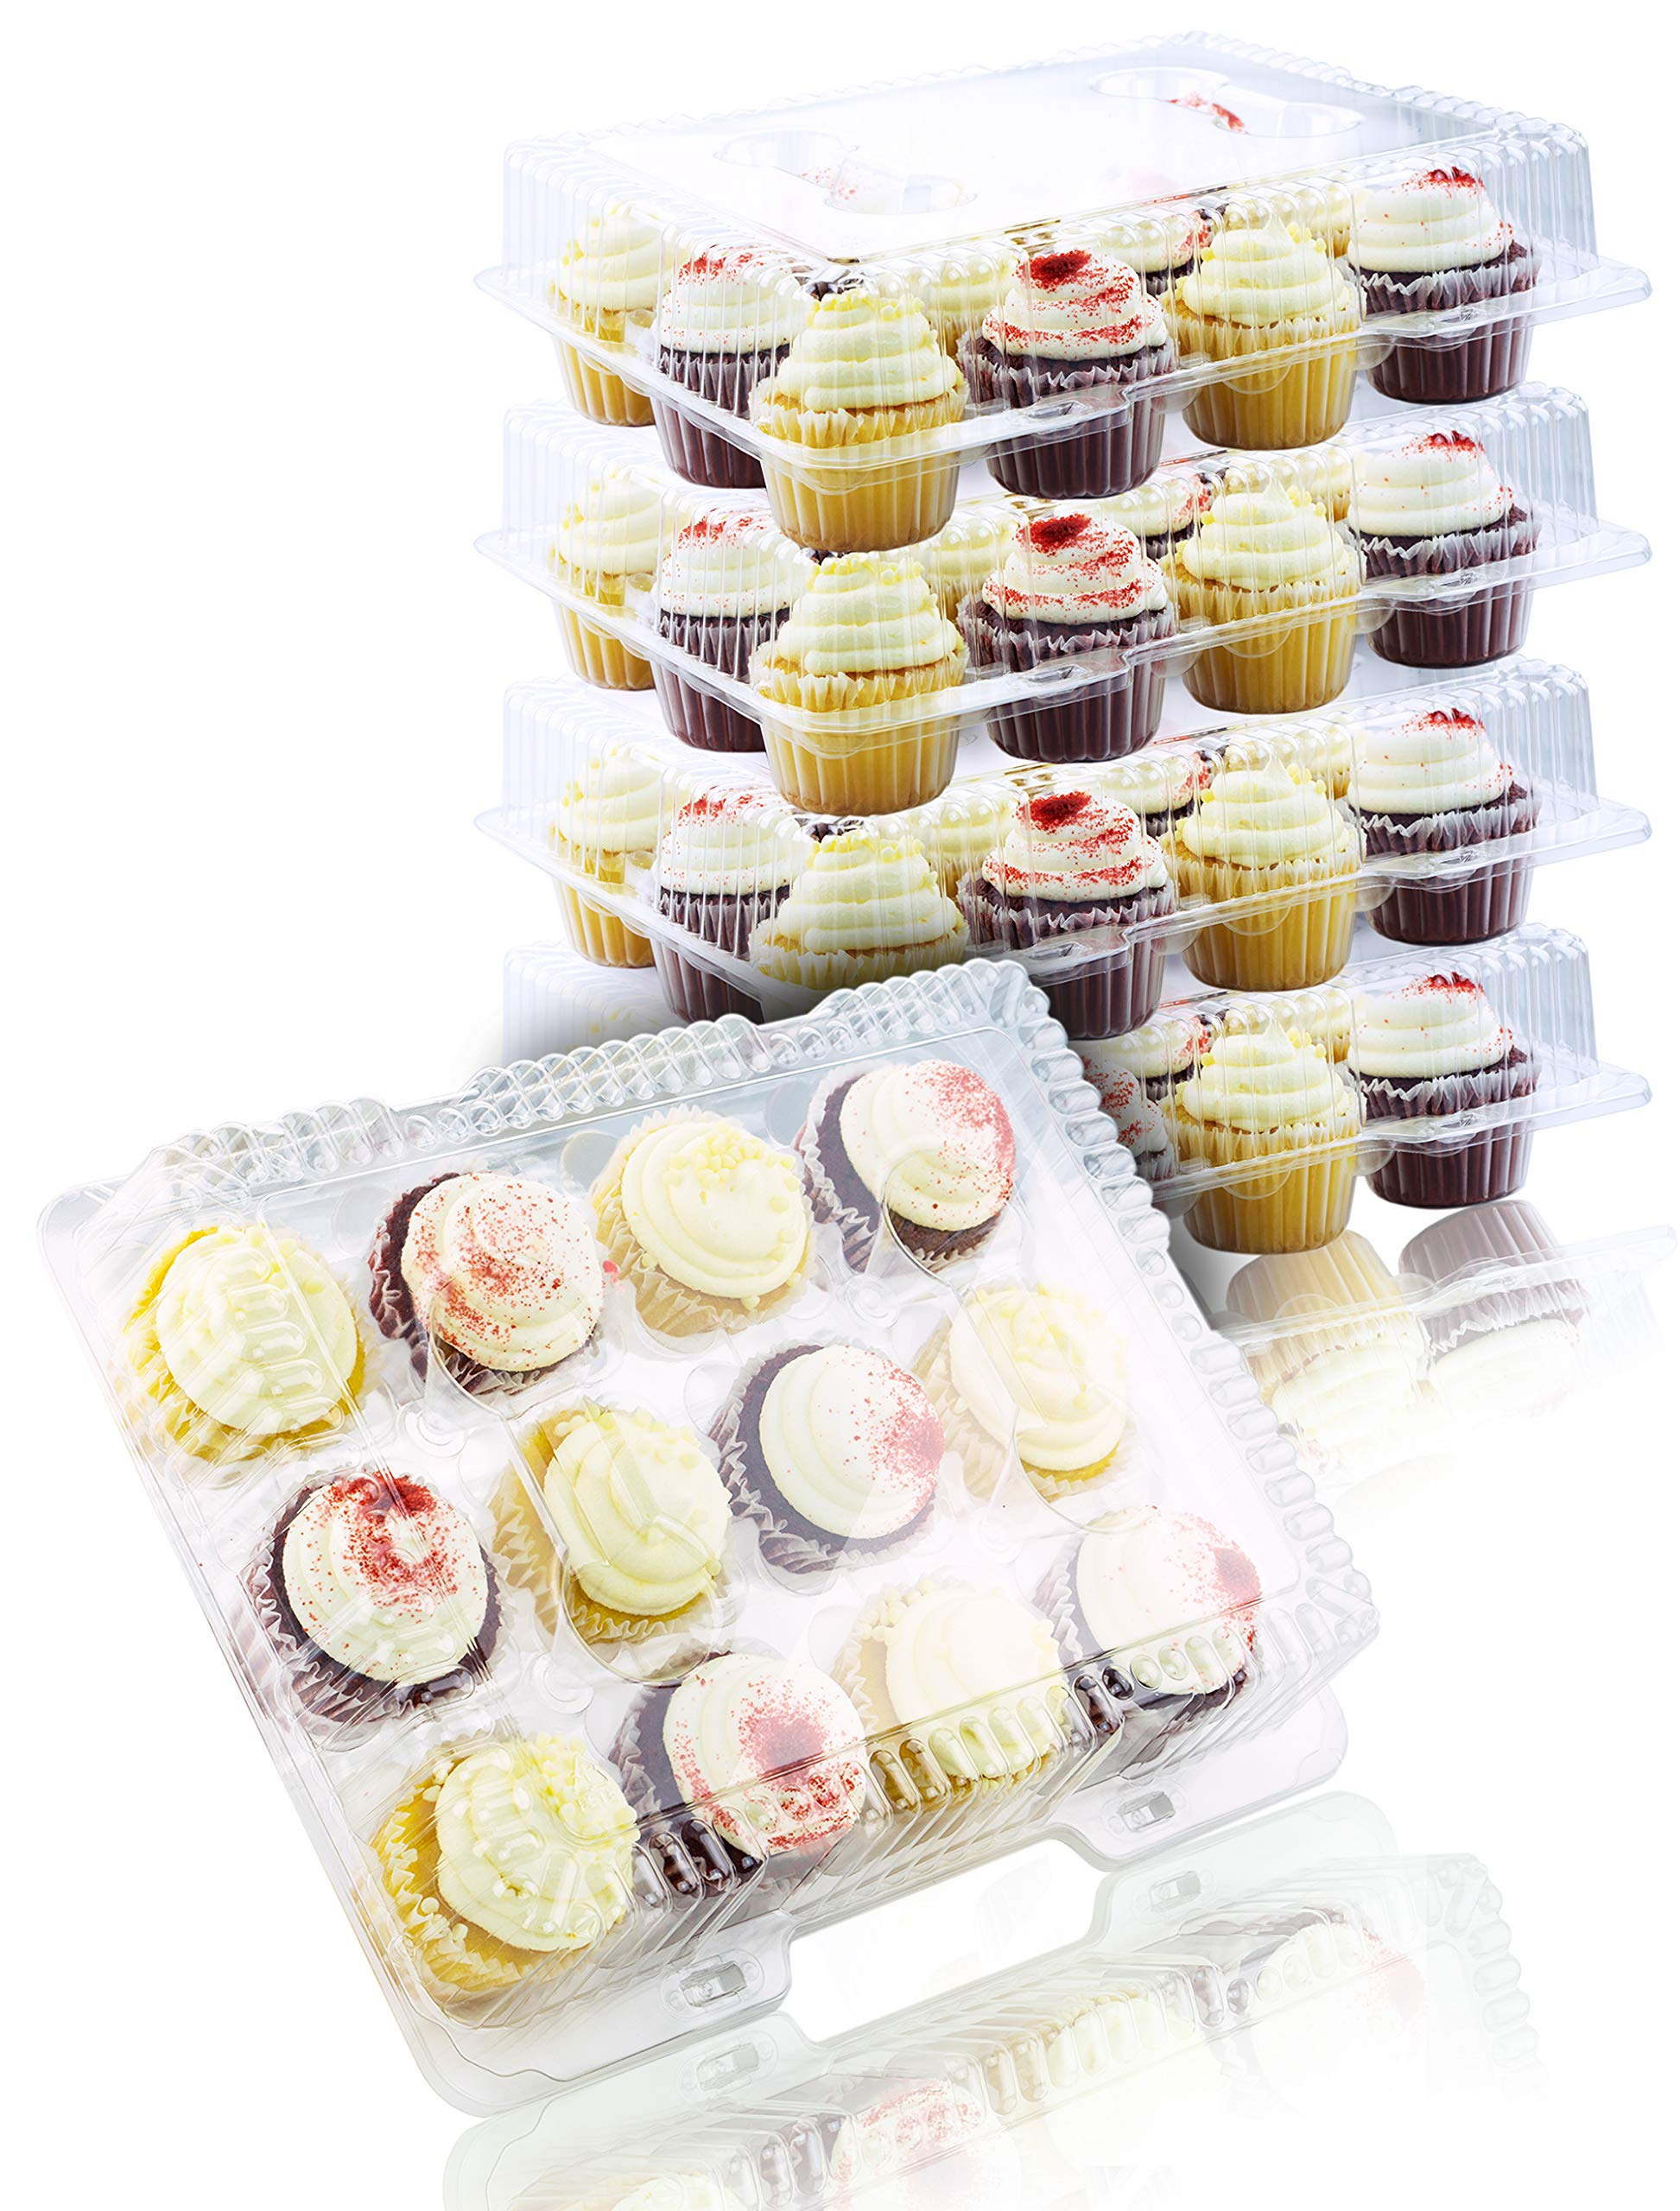 Chefible 12 Plastic Disposable Cupcake Container, Takeout Container, Cupcake Carrier - Set of 4 by Chefible®